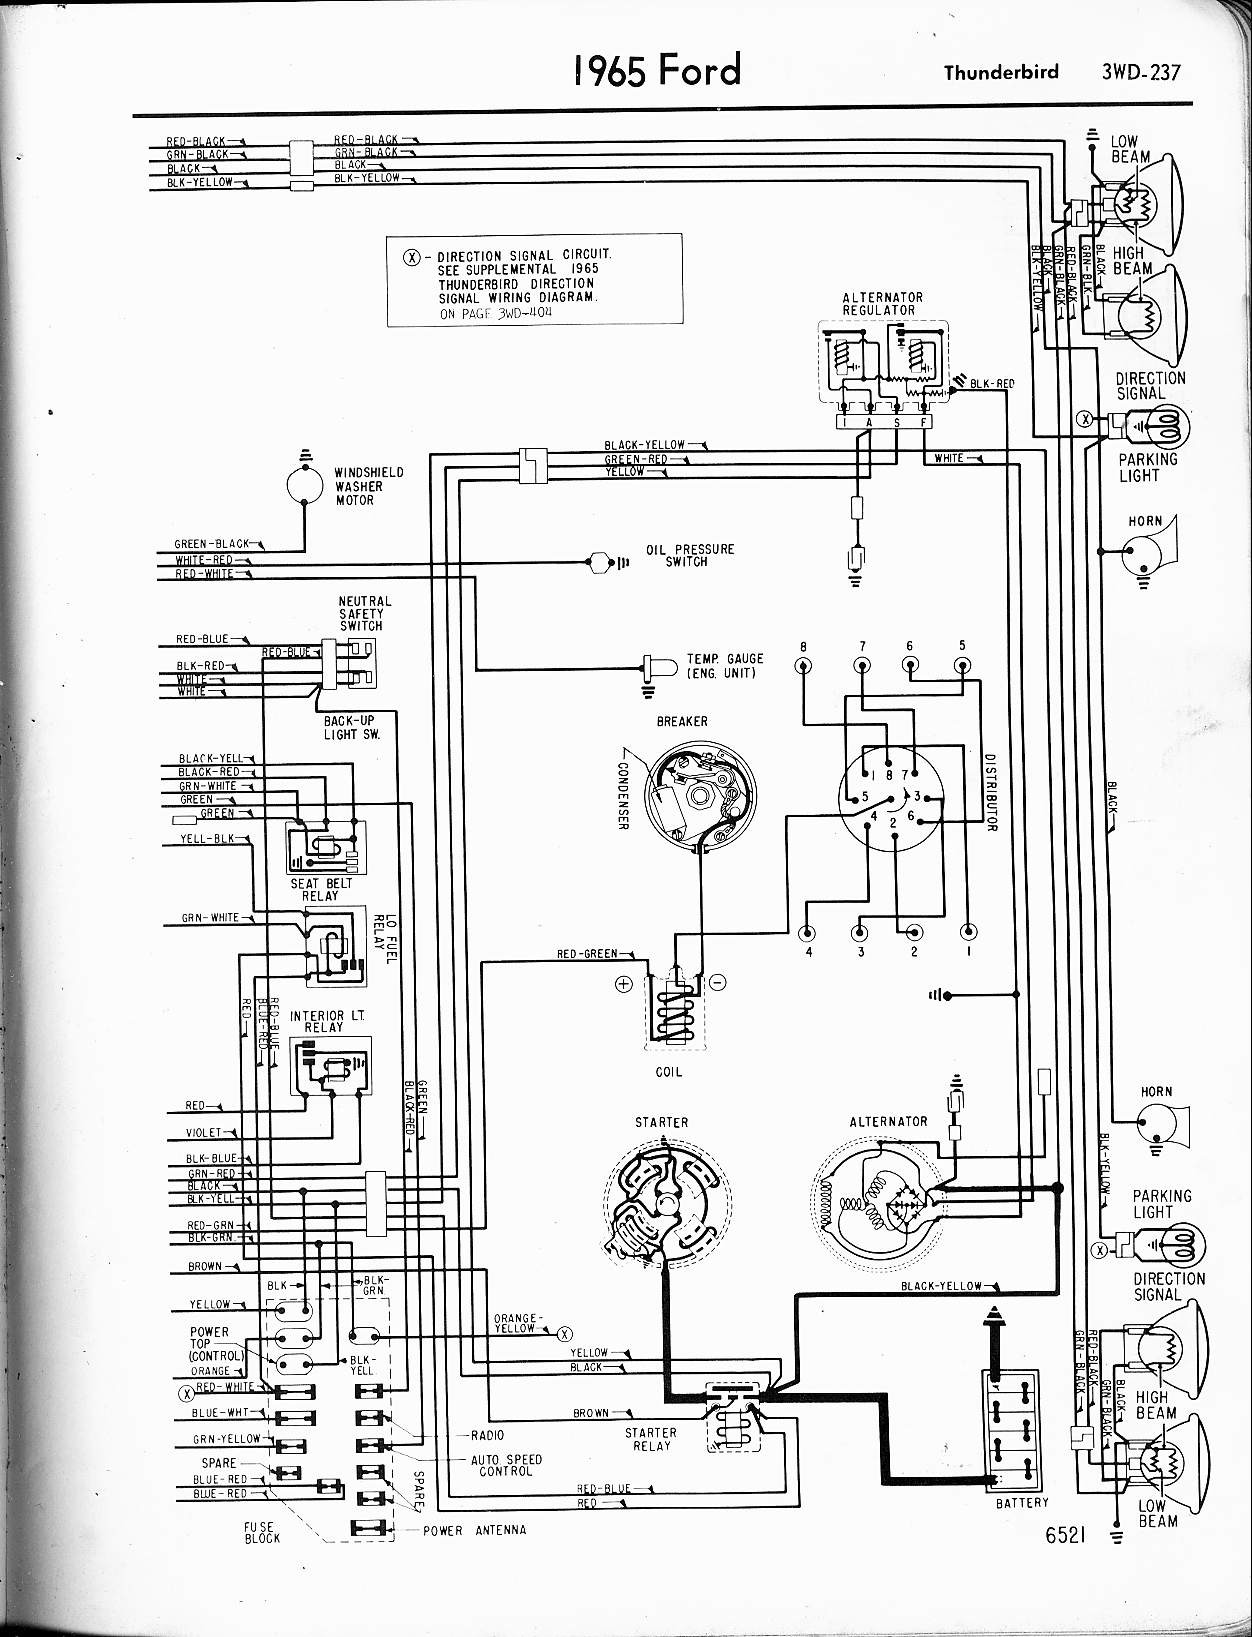 1970 ford f100 charging system wiring diagram electrical drawing ford truck  throttle linkage 1979 ford truck